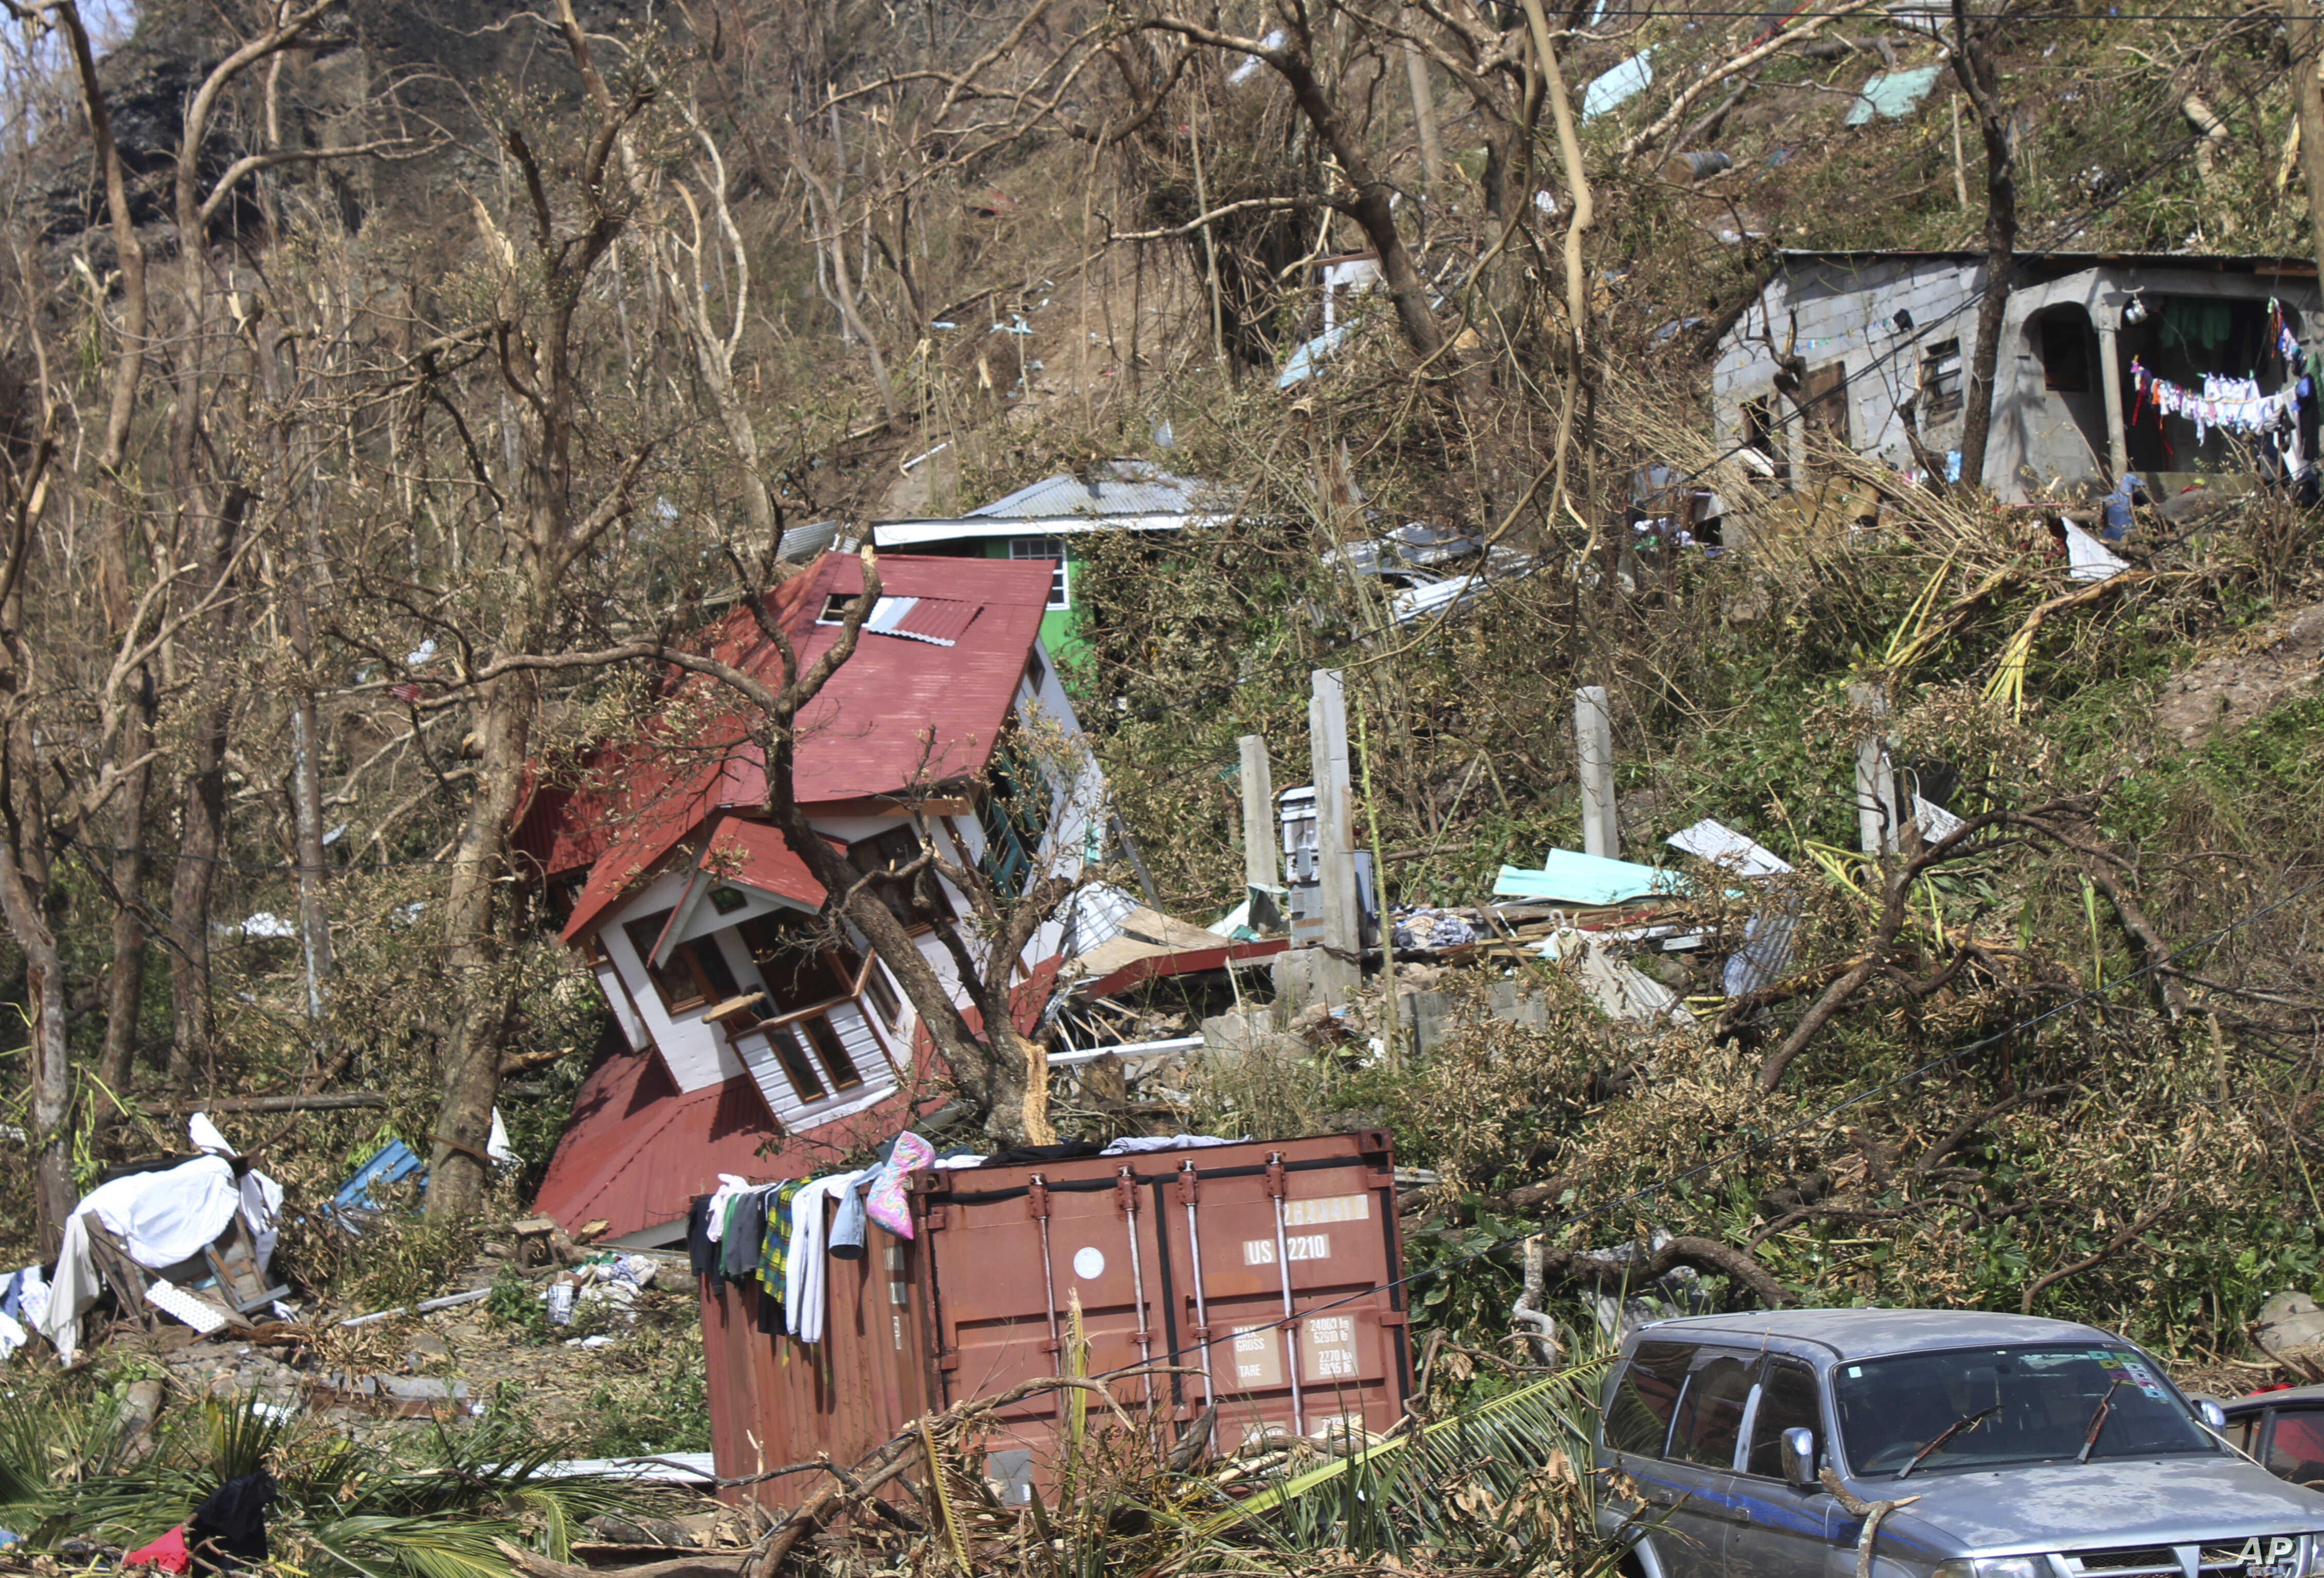 FILE - In this Sept. 23, 2017, photo, homes lay scattered after the passing of Hurricane Maria in Roseau, the capital of the island of Dominica.